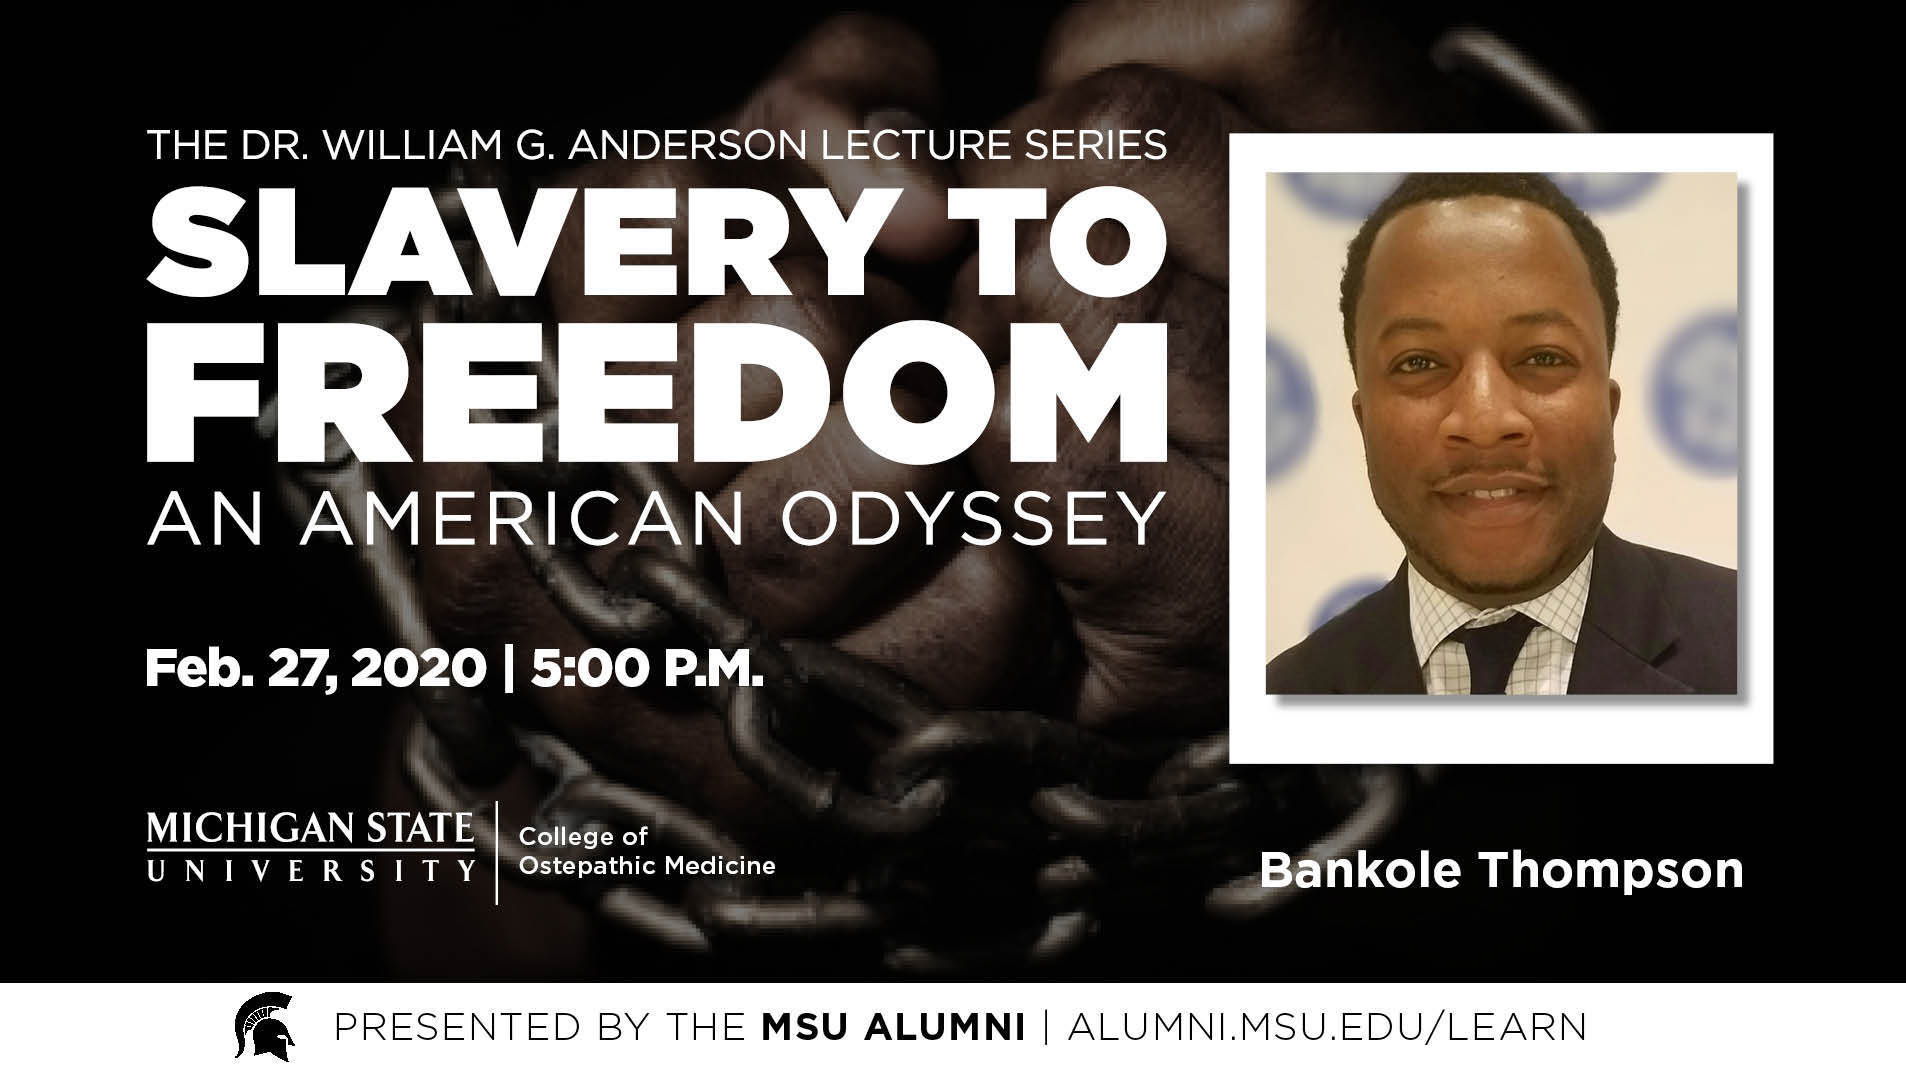 livestream cover image for Slavery to Freedom | Bankole Thompson